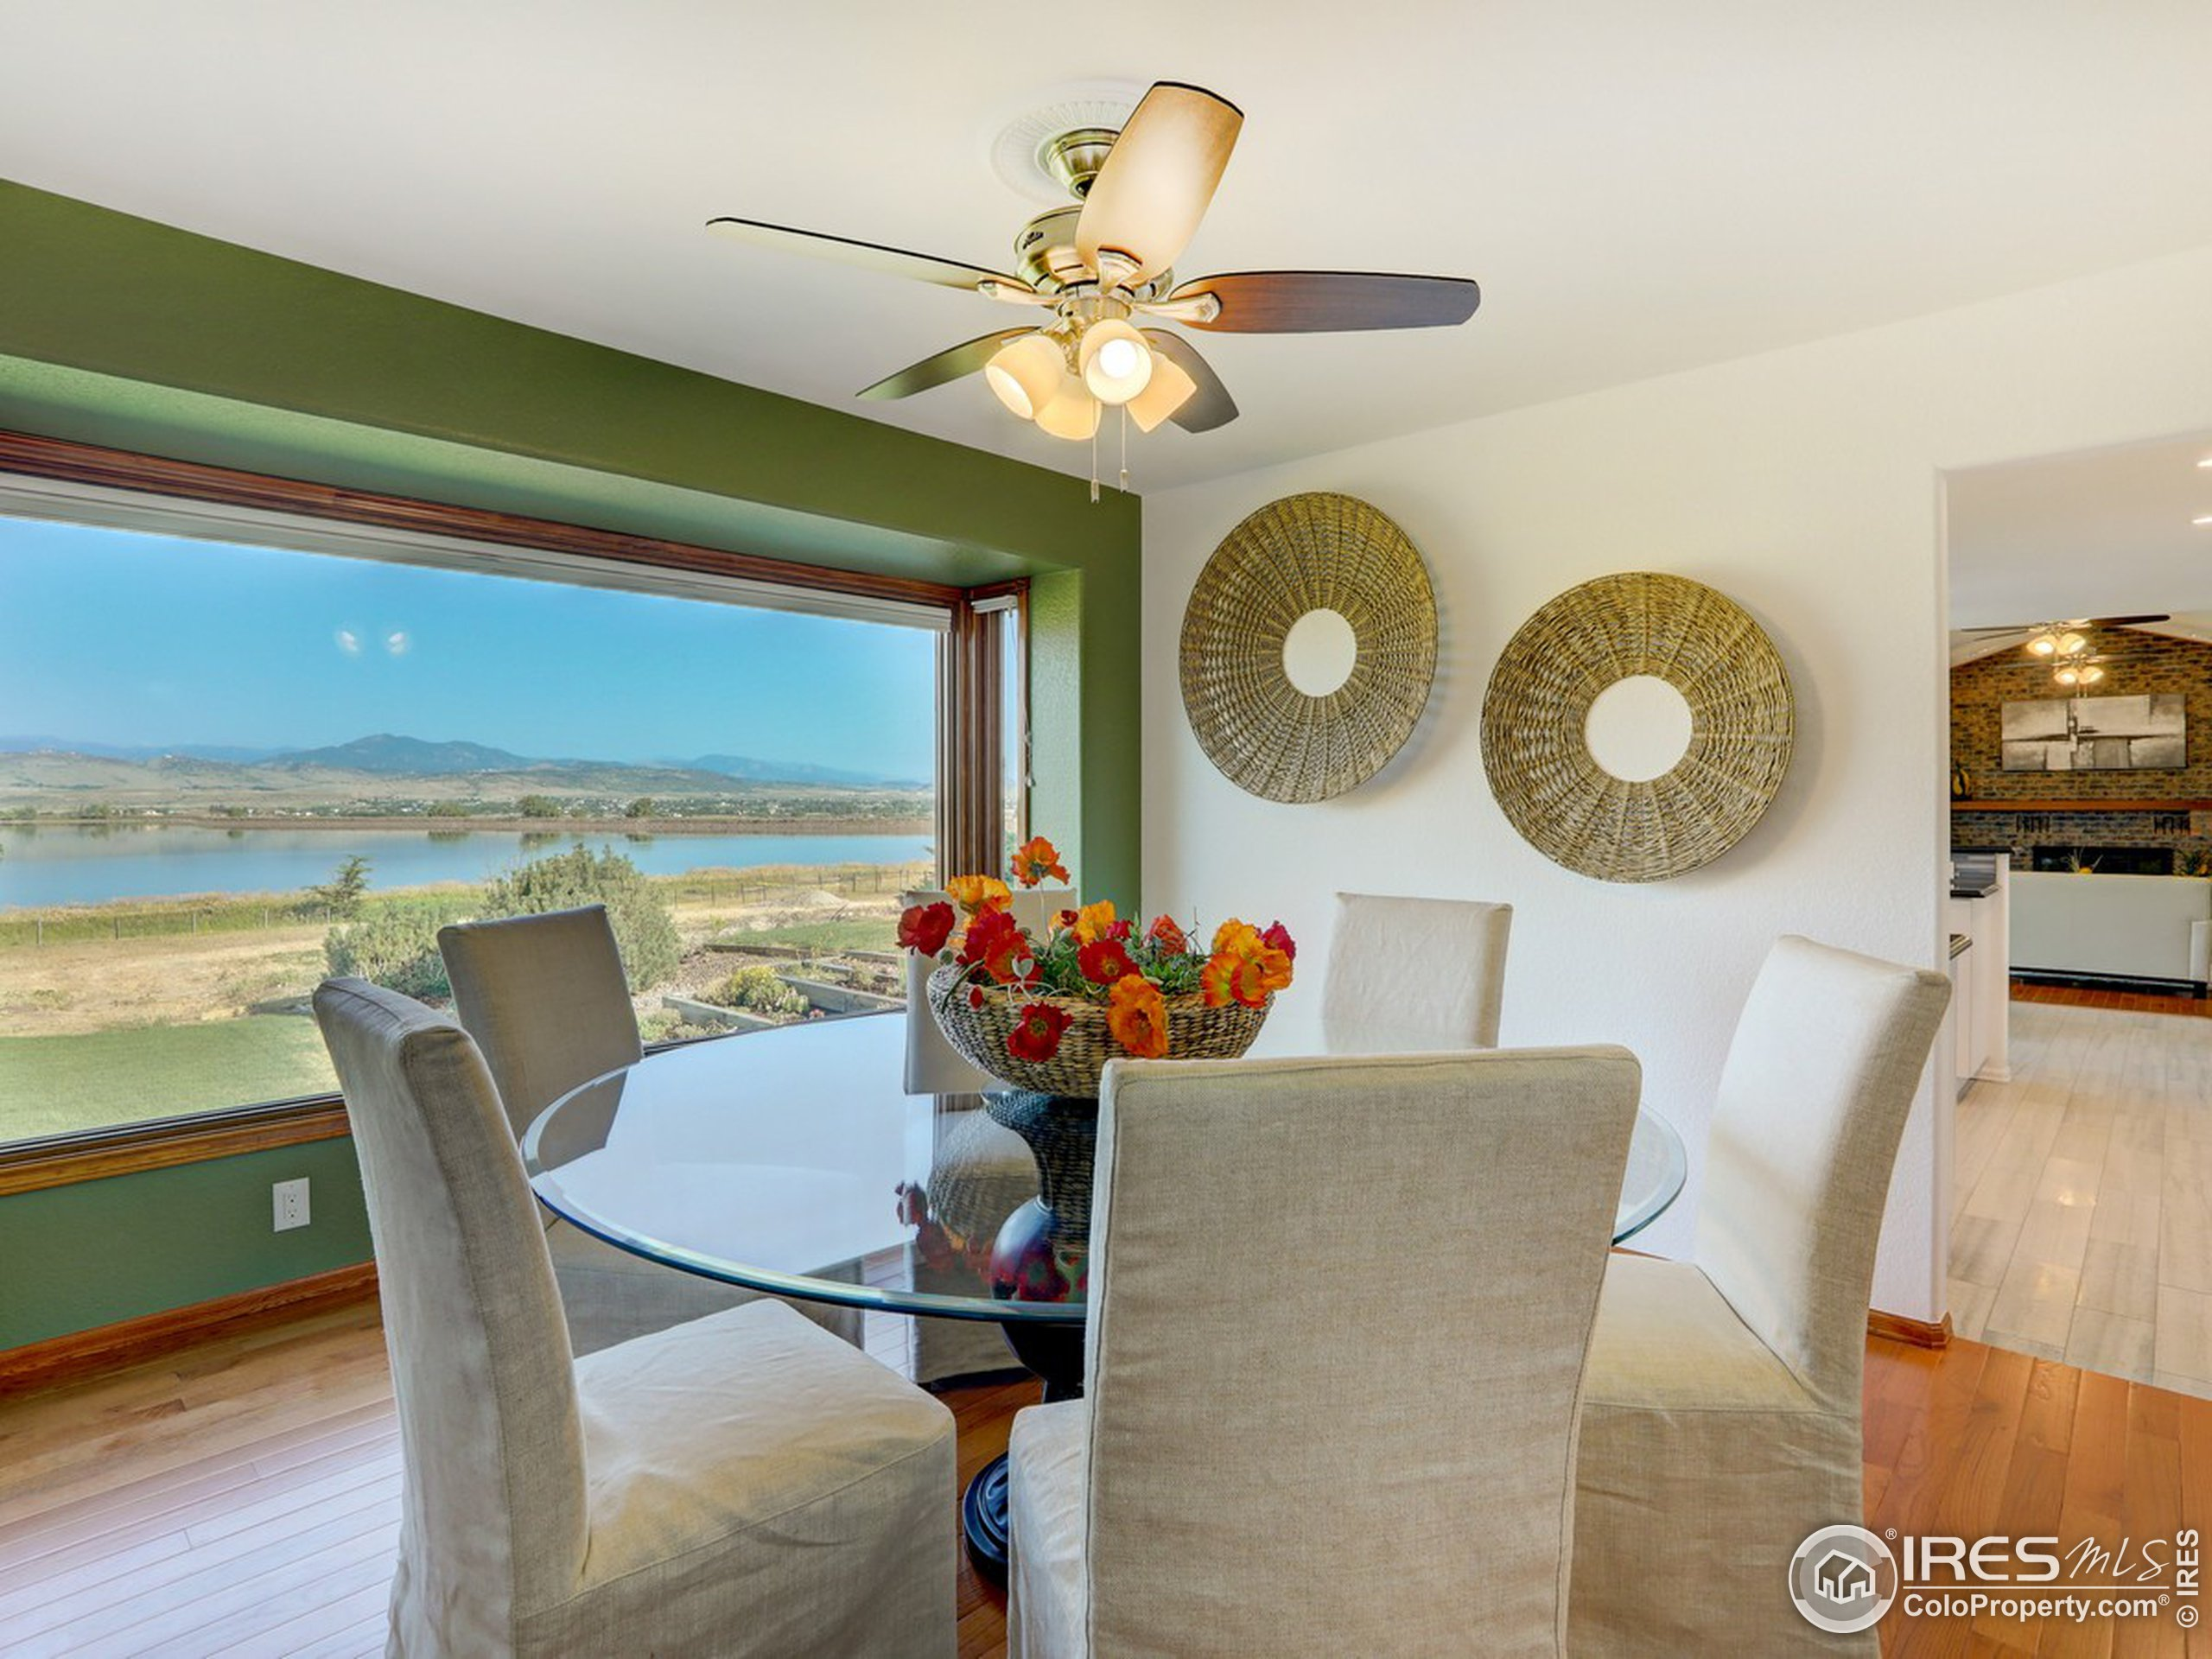 Dining room with expansive views.